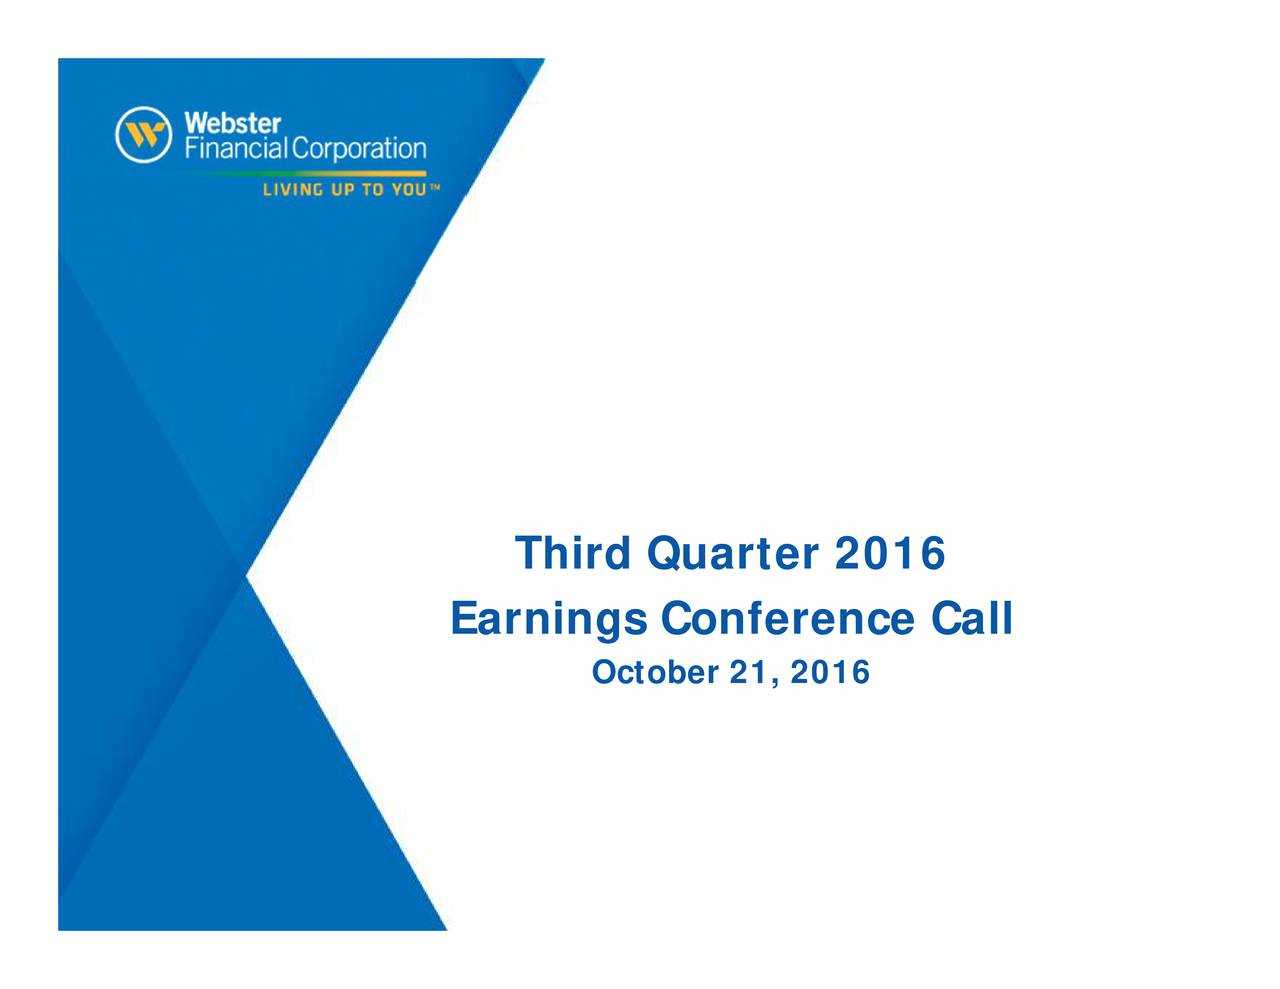 Earnings Conference Call October 21, 2016